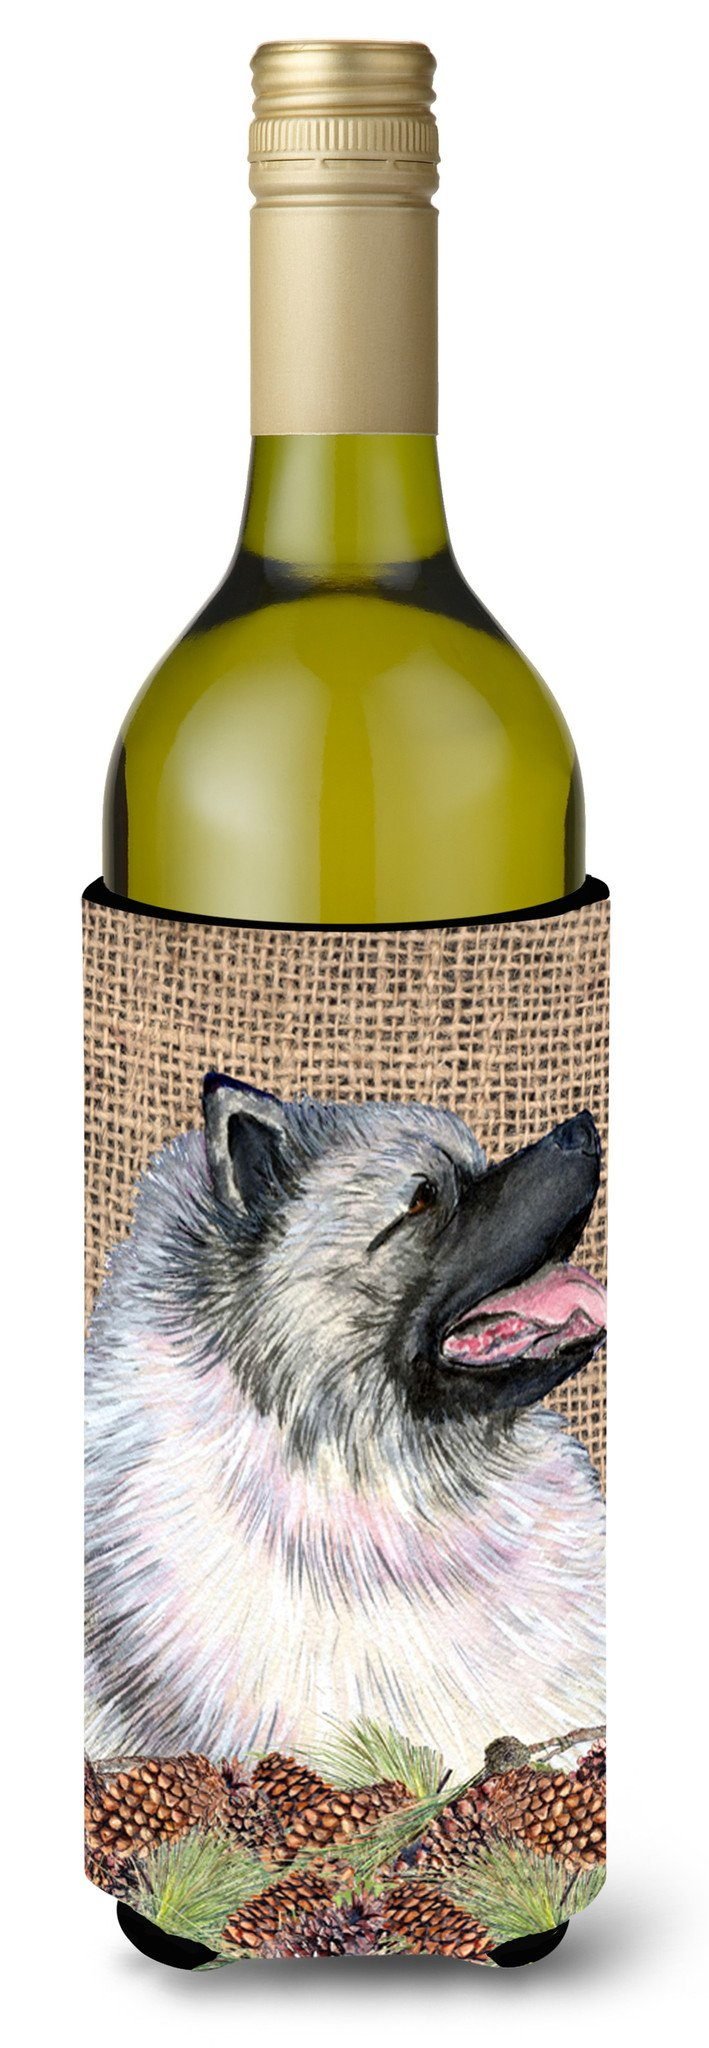 Keeshond on Faux Burlap with Pine Cones Wine Bottle Beverage Insulator Beverage Insulator Hugger by Caroline's Treasures